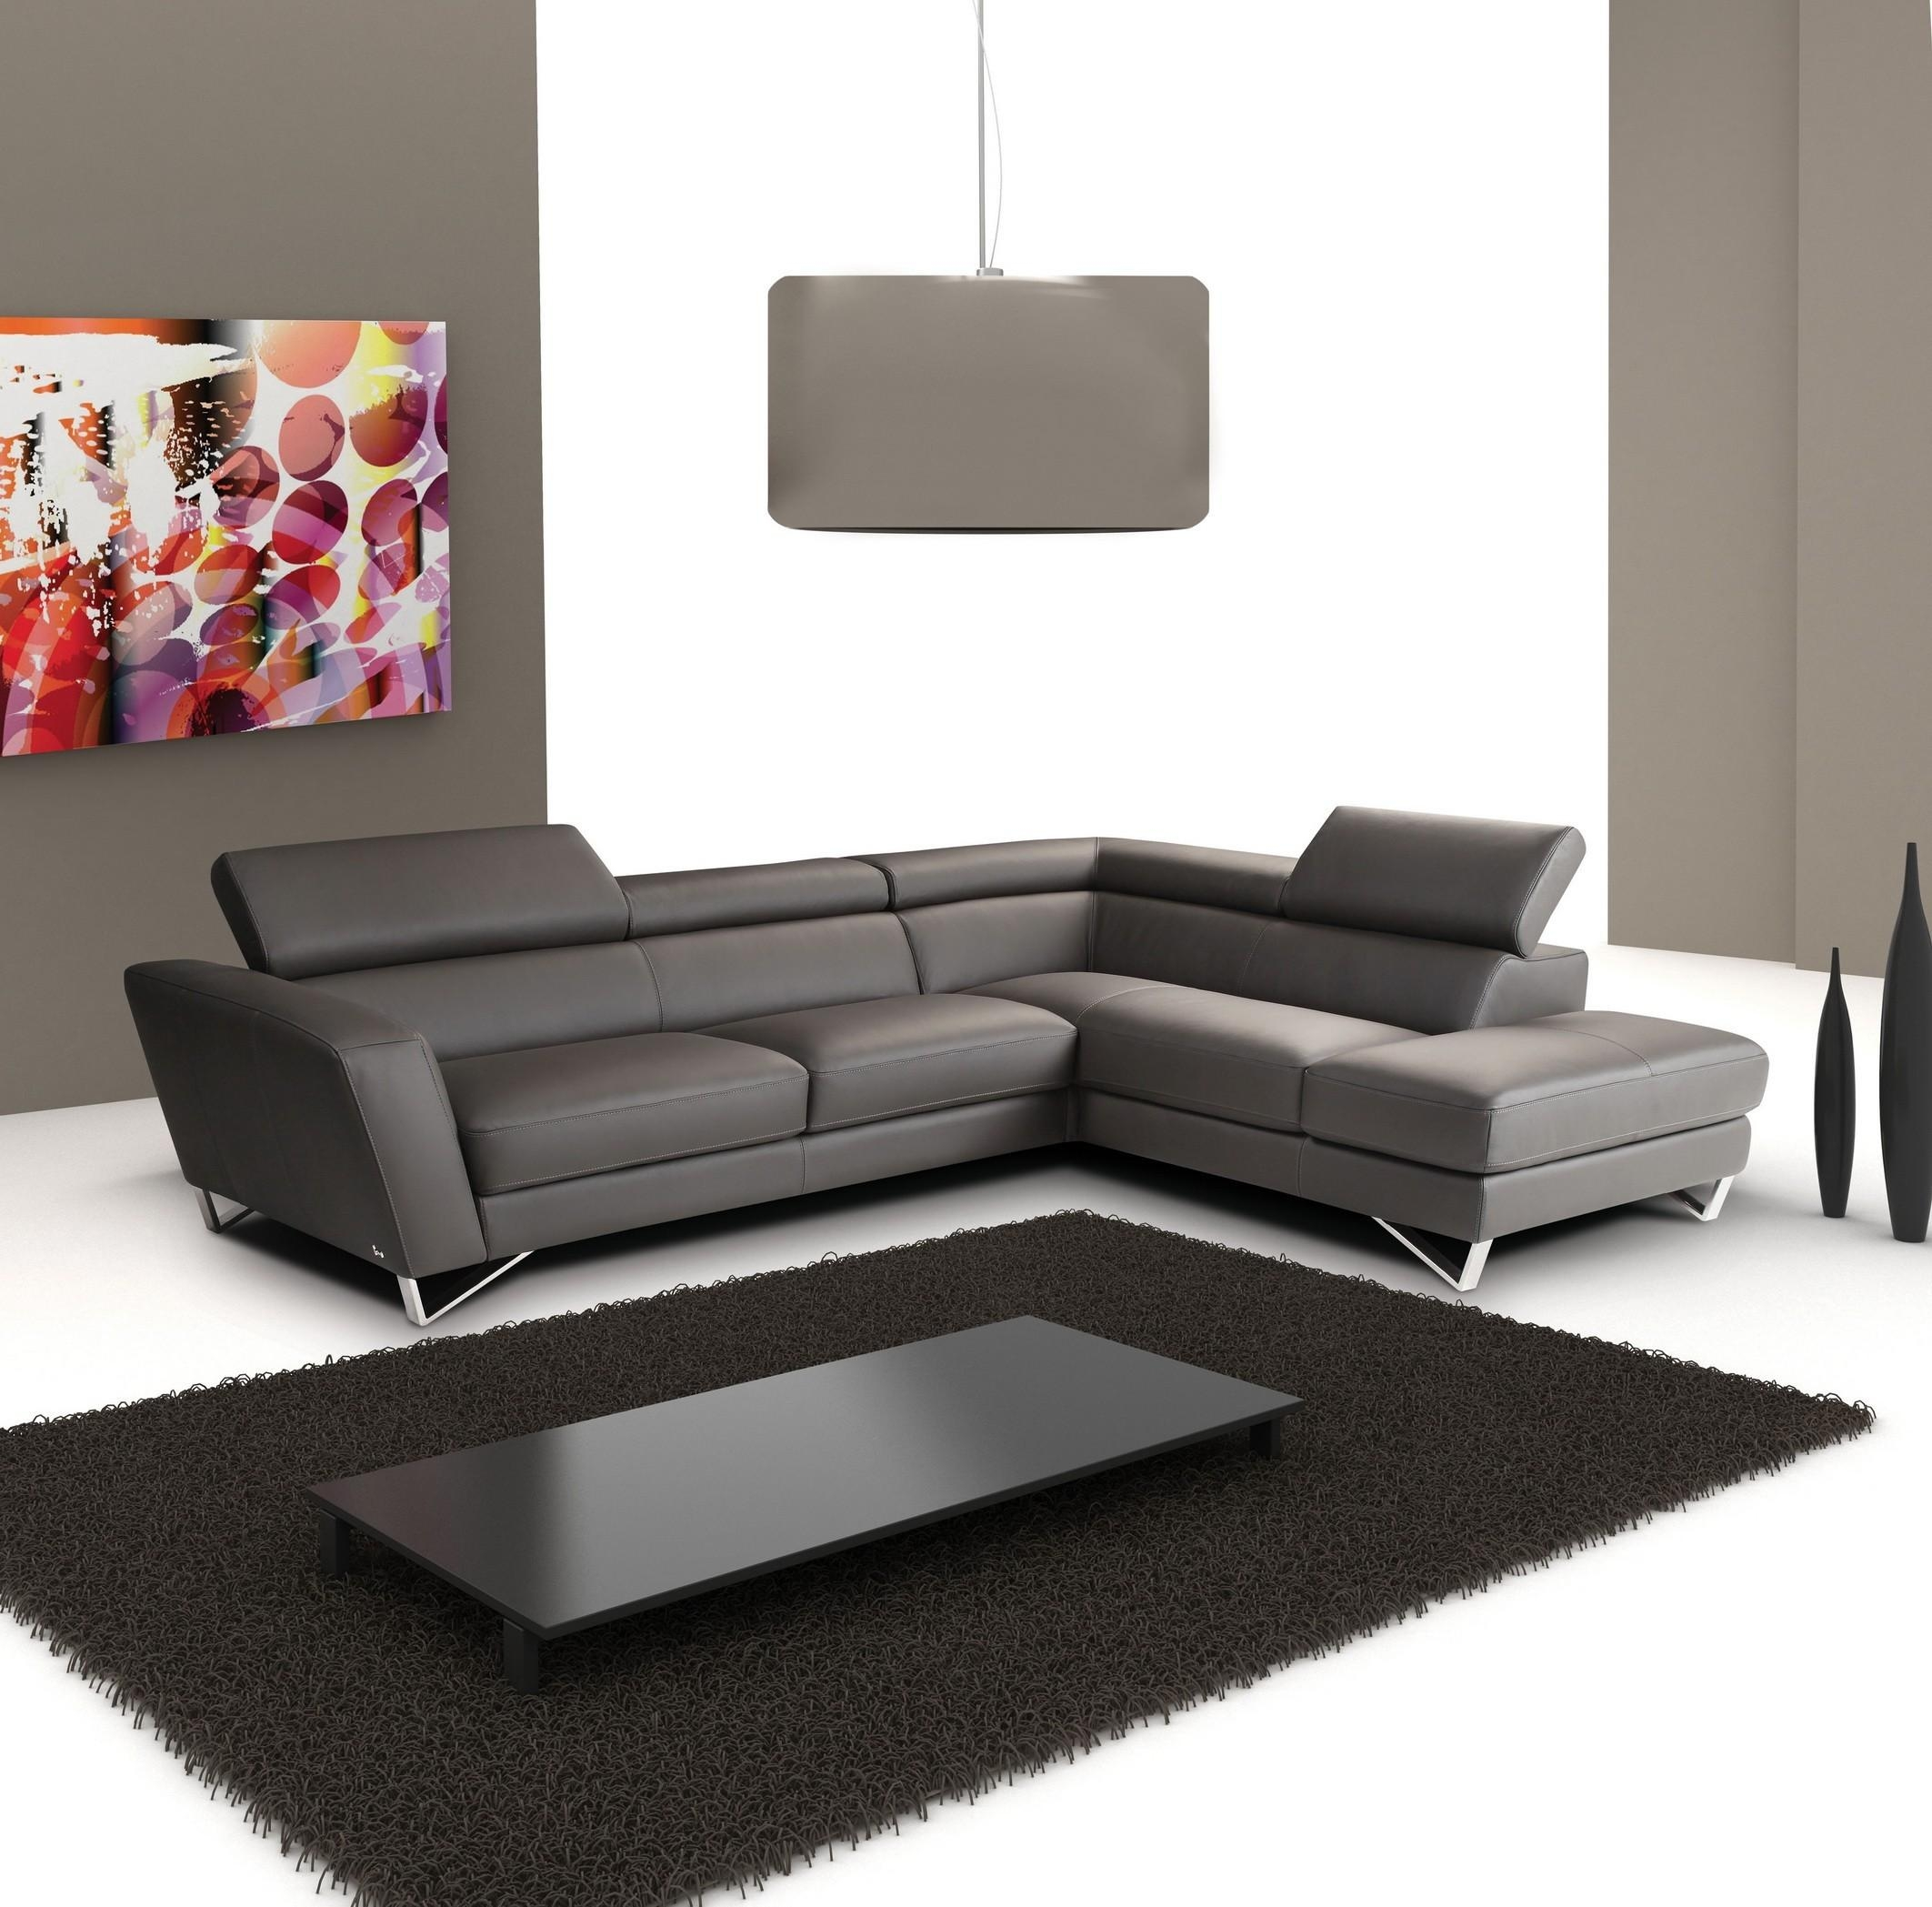 Furniture: Amusing Furniture Decorated L Shaped Sleeper Sofa For Within Corner Sleeper Sofas (Image 8 of 20)